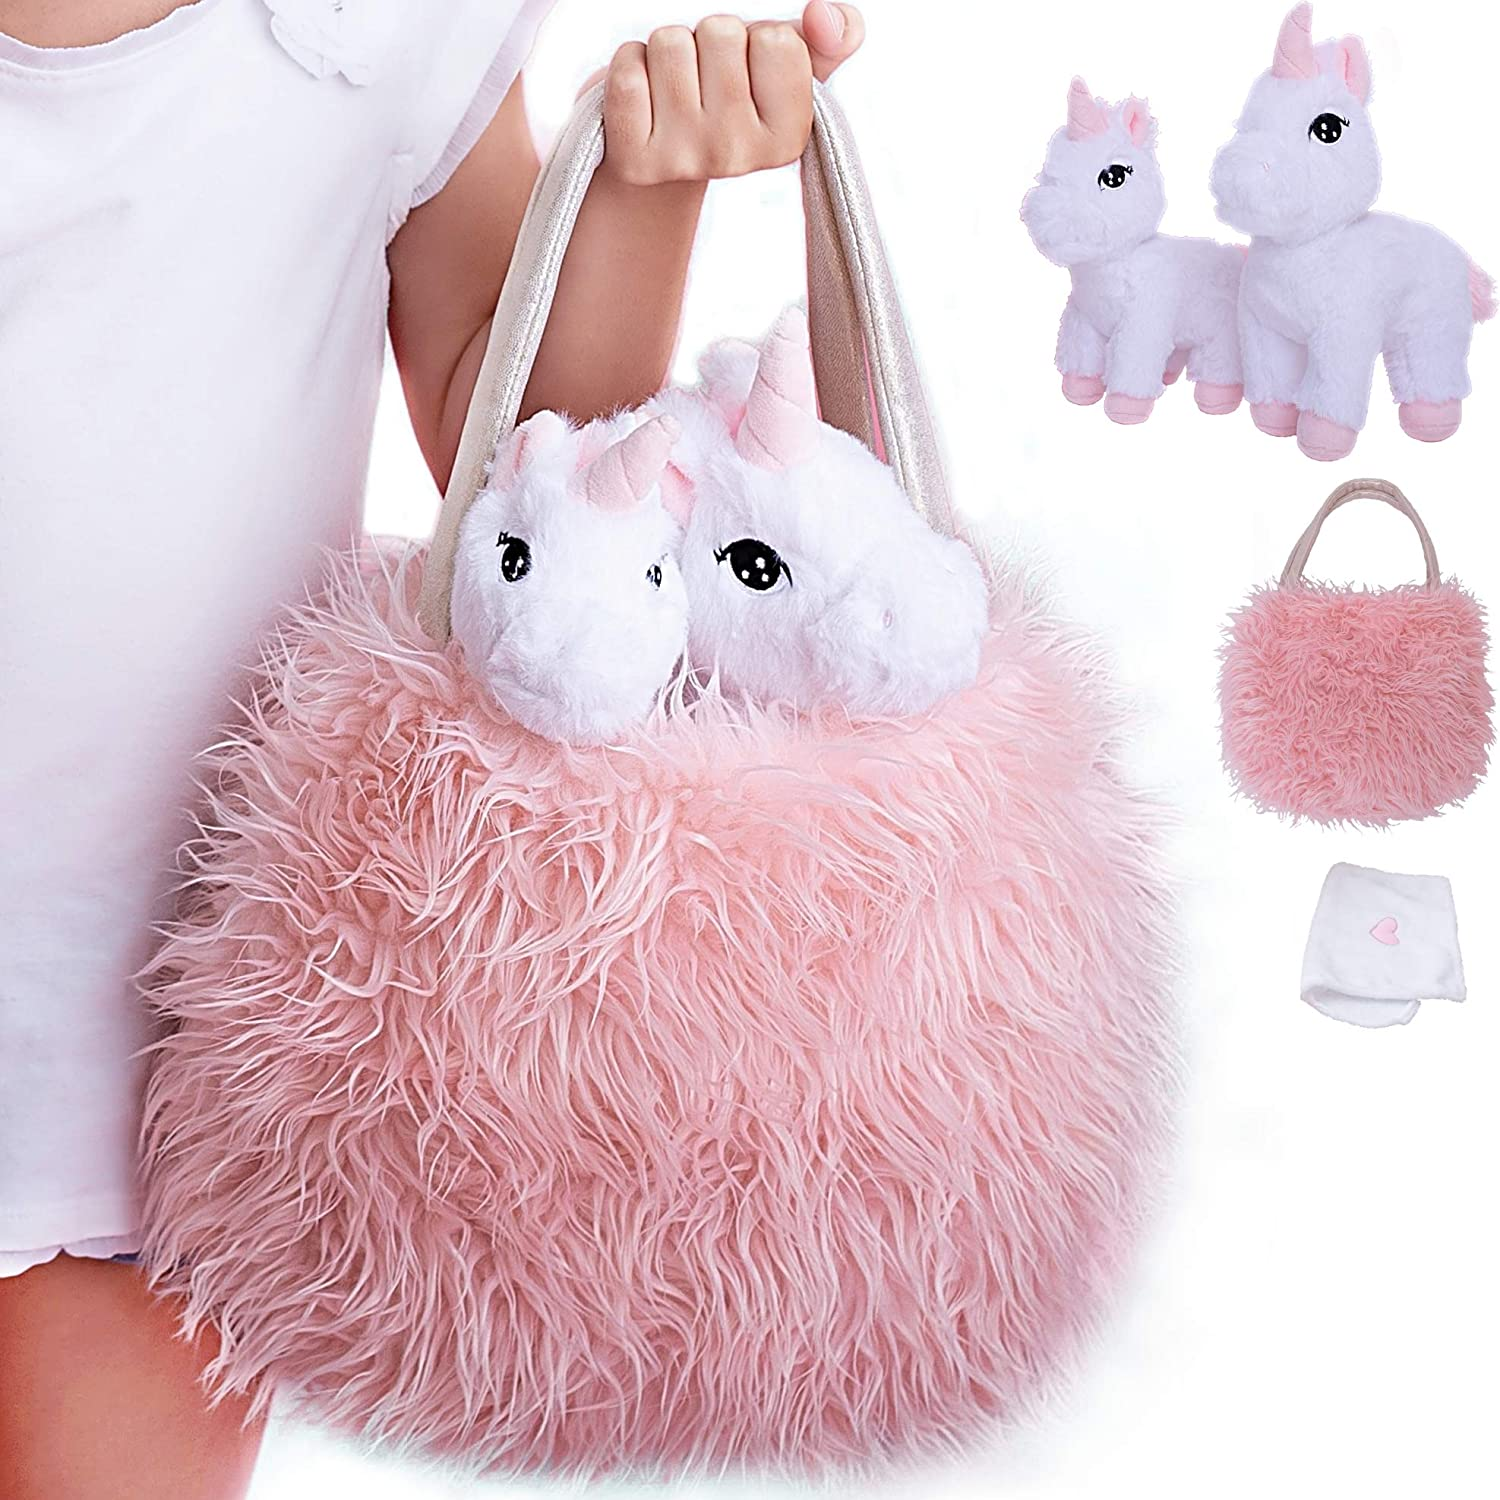 Unicorn Gift for Girls 4 Pcs Set. Baby and Mommy Unicorn Toy, XL Furry Bag and Baby Doll Blanket. Adorable Plush Toy for 3 4 5 Year Old Girl, Unicorn Gift for Little Girl. Birthday, Christmas Age 2-8